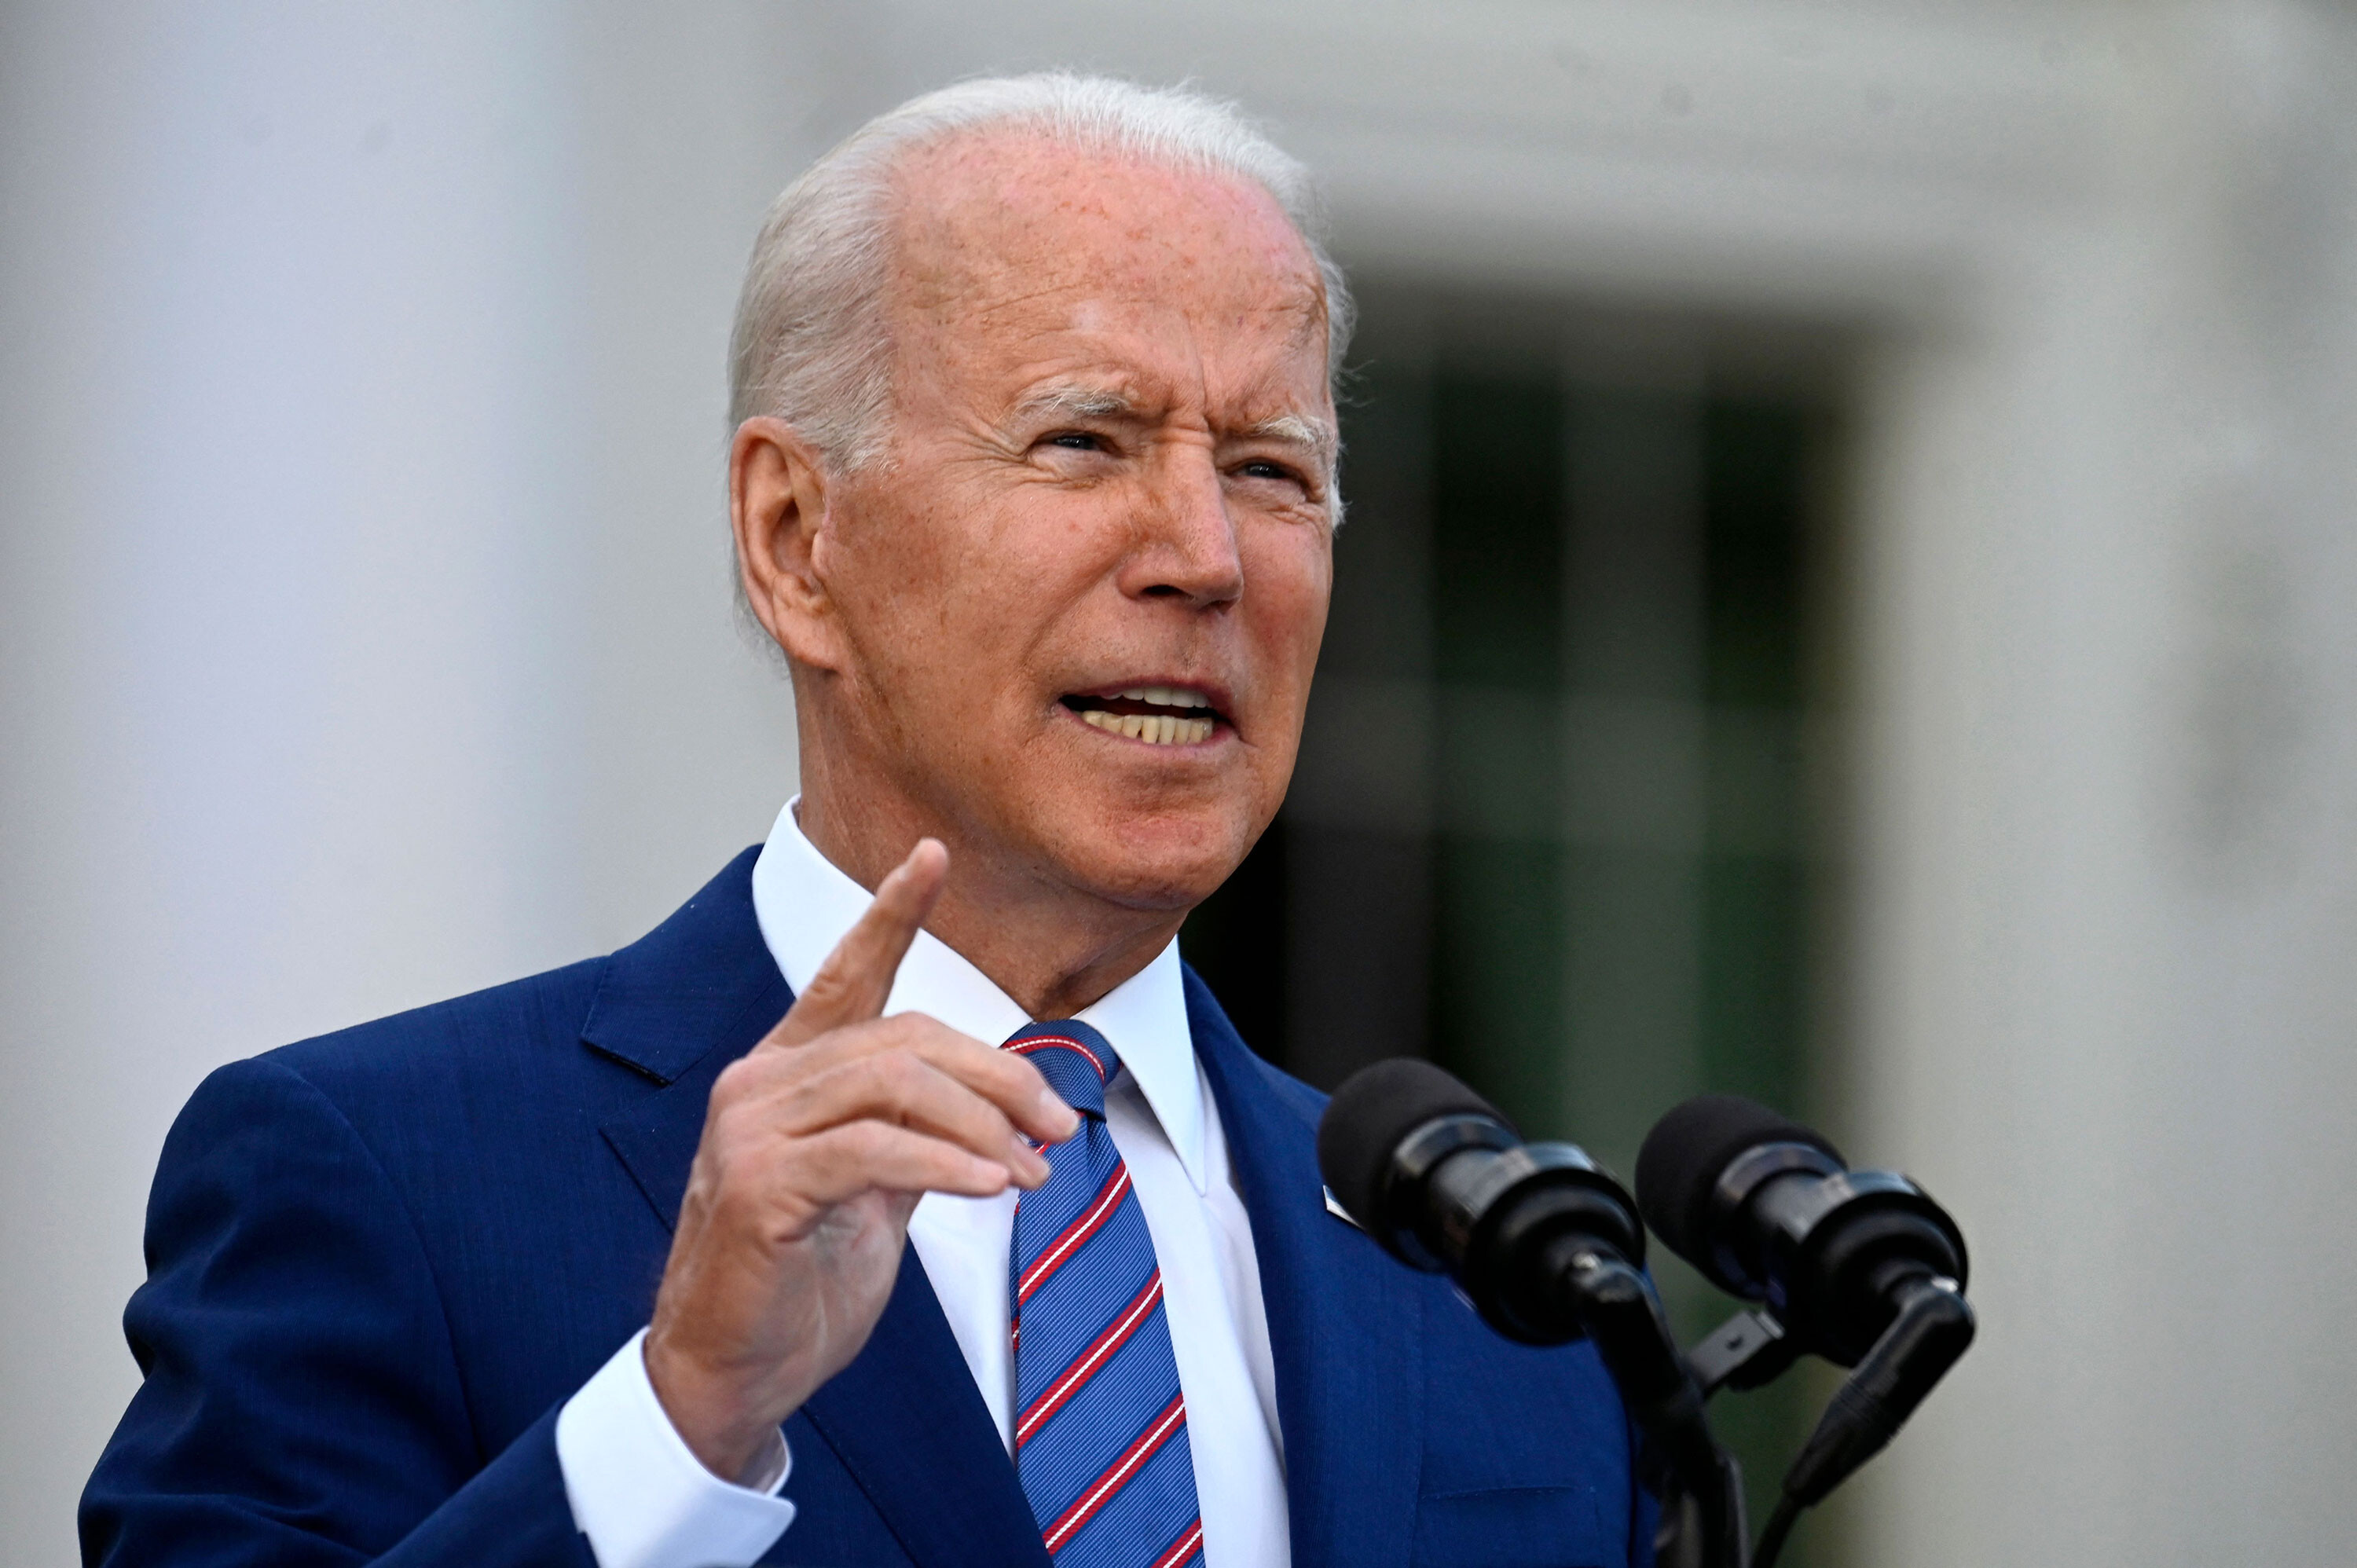 Biden to make 'moral case' for voting rights in major speech Tuesday